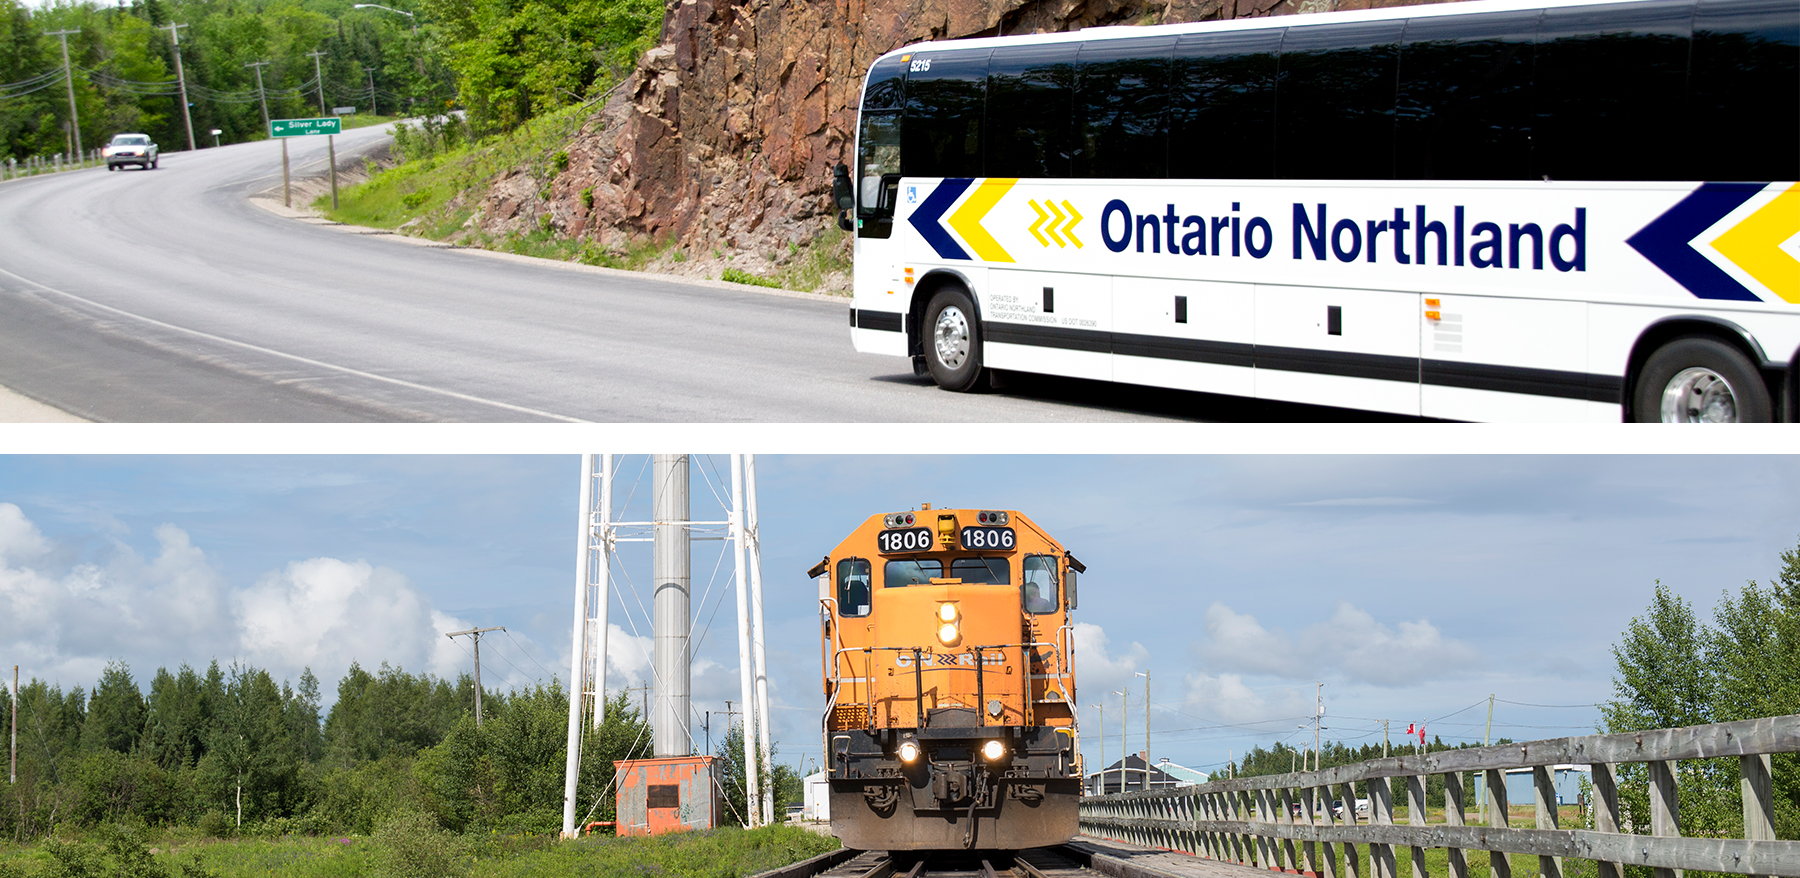 The return bus trip will operate at the end of the weekend, whether it's the Sunday or holiday Monday, and connect with a Toronto-bound GO train at Aurora GO Station. One ticket will provide transportation on both the GO train and the Ontario Northland bus. Tickets can be purchased at narmaformcap.tk